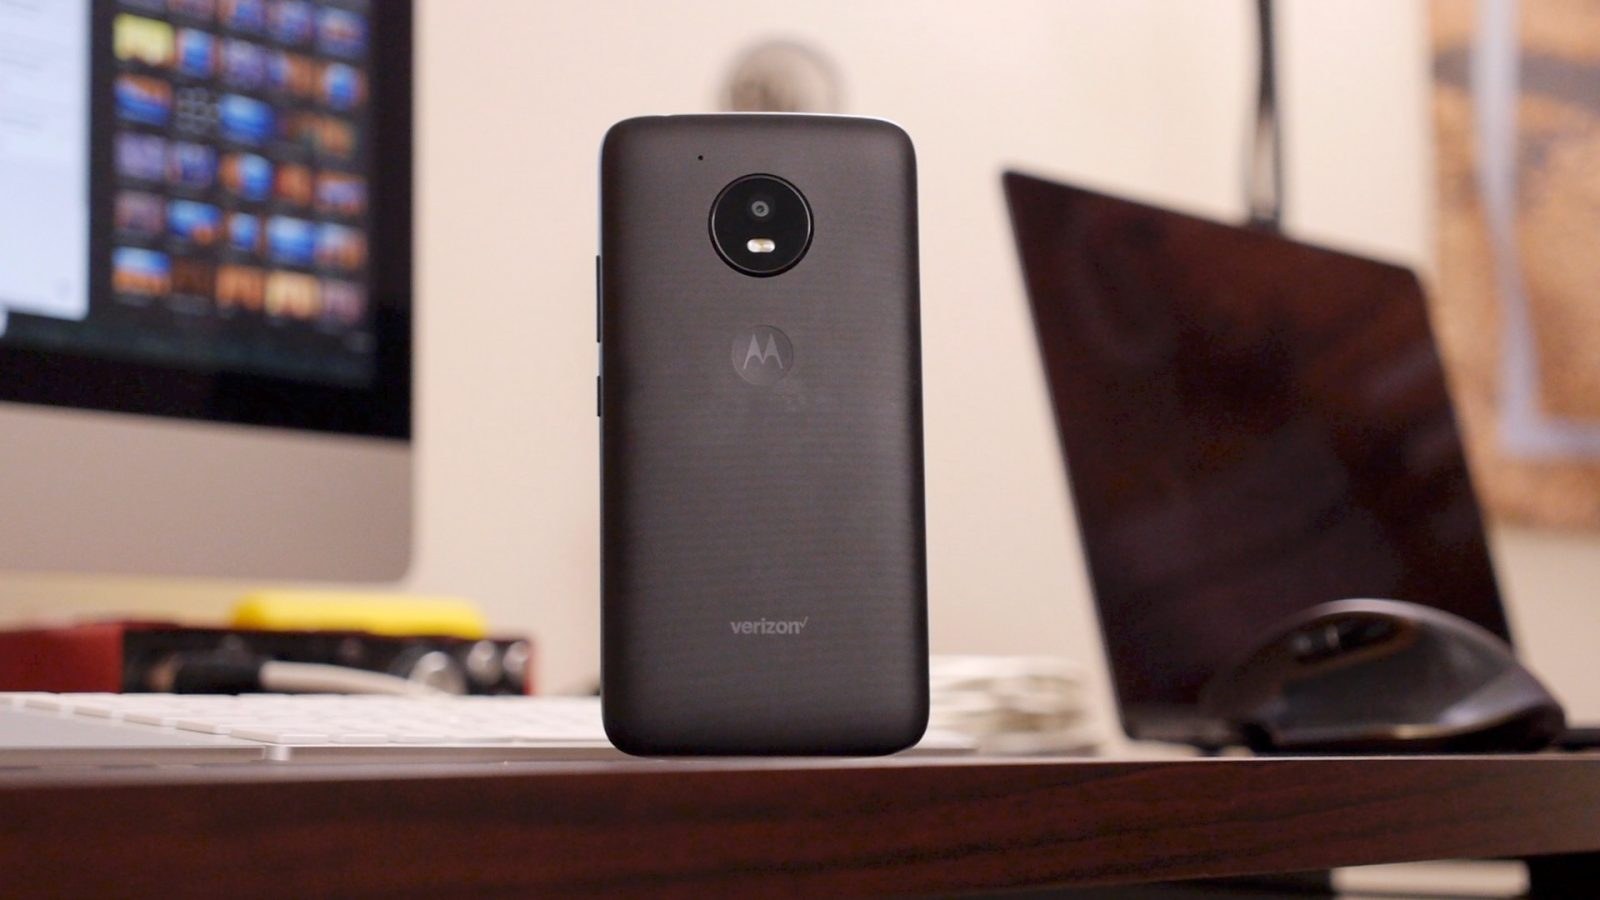 Review: Moto E4 nails the basics for customers on a tight